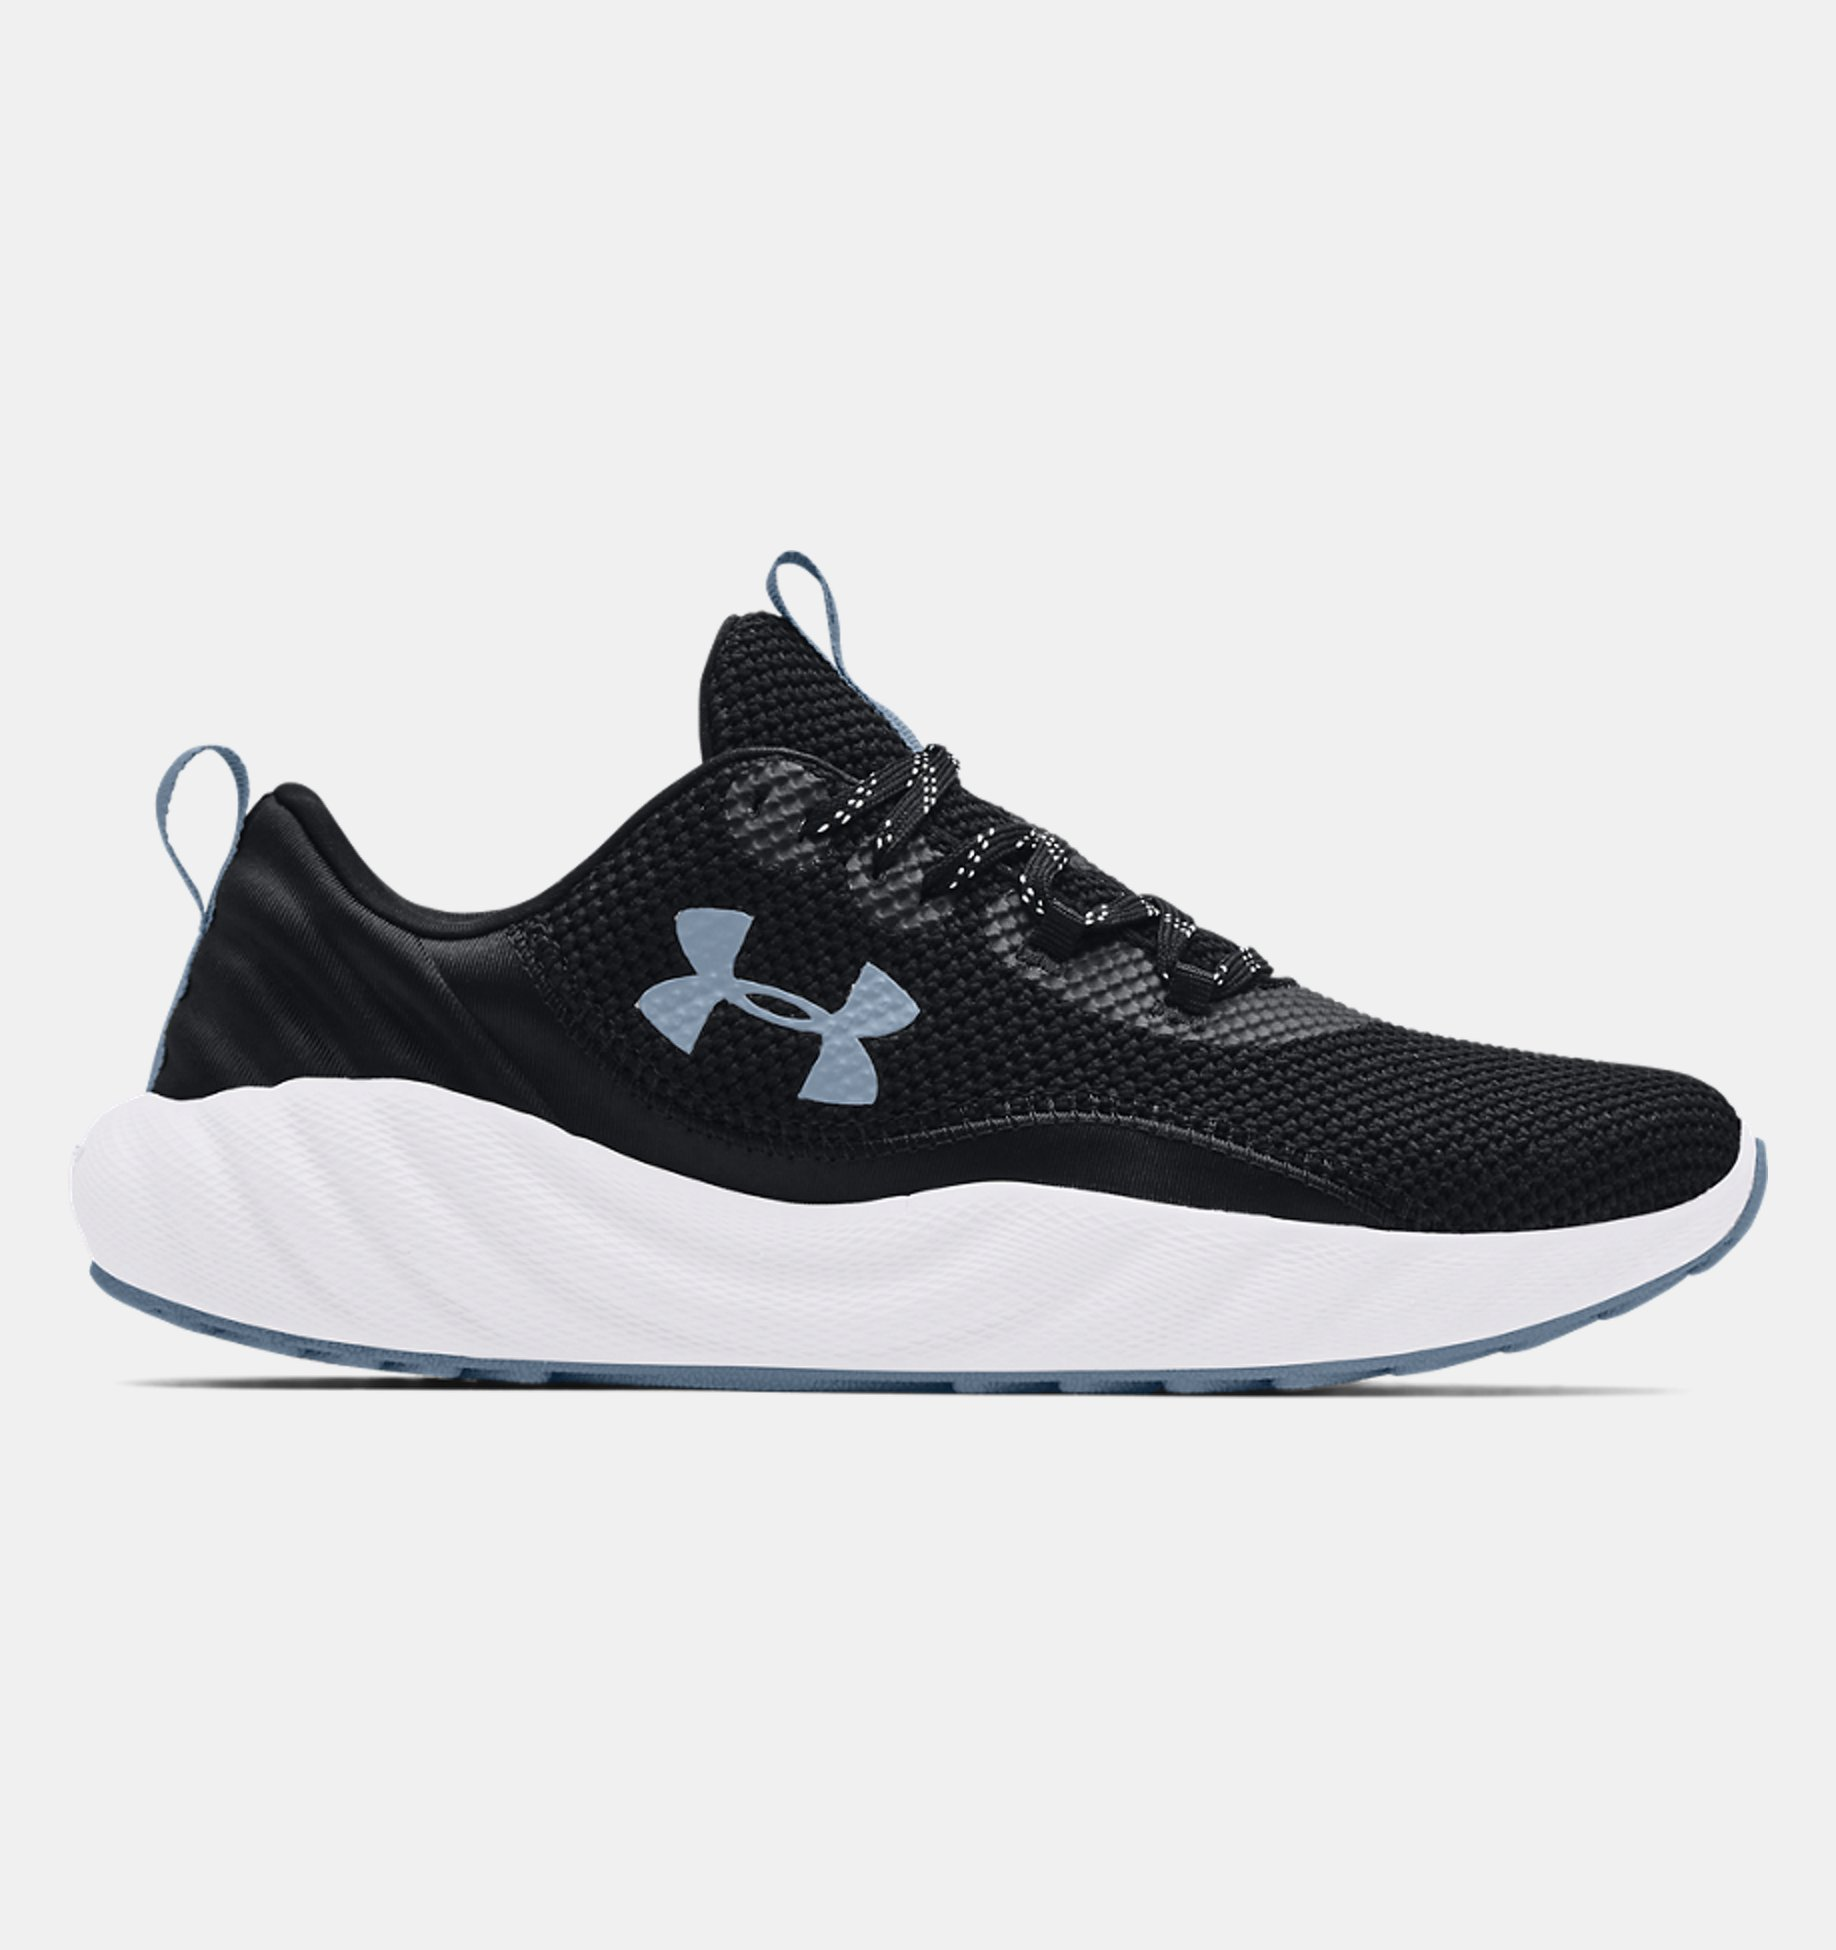 Underarmour Womens UA Charged Will Sportstyle Shoes